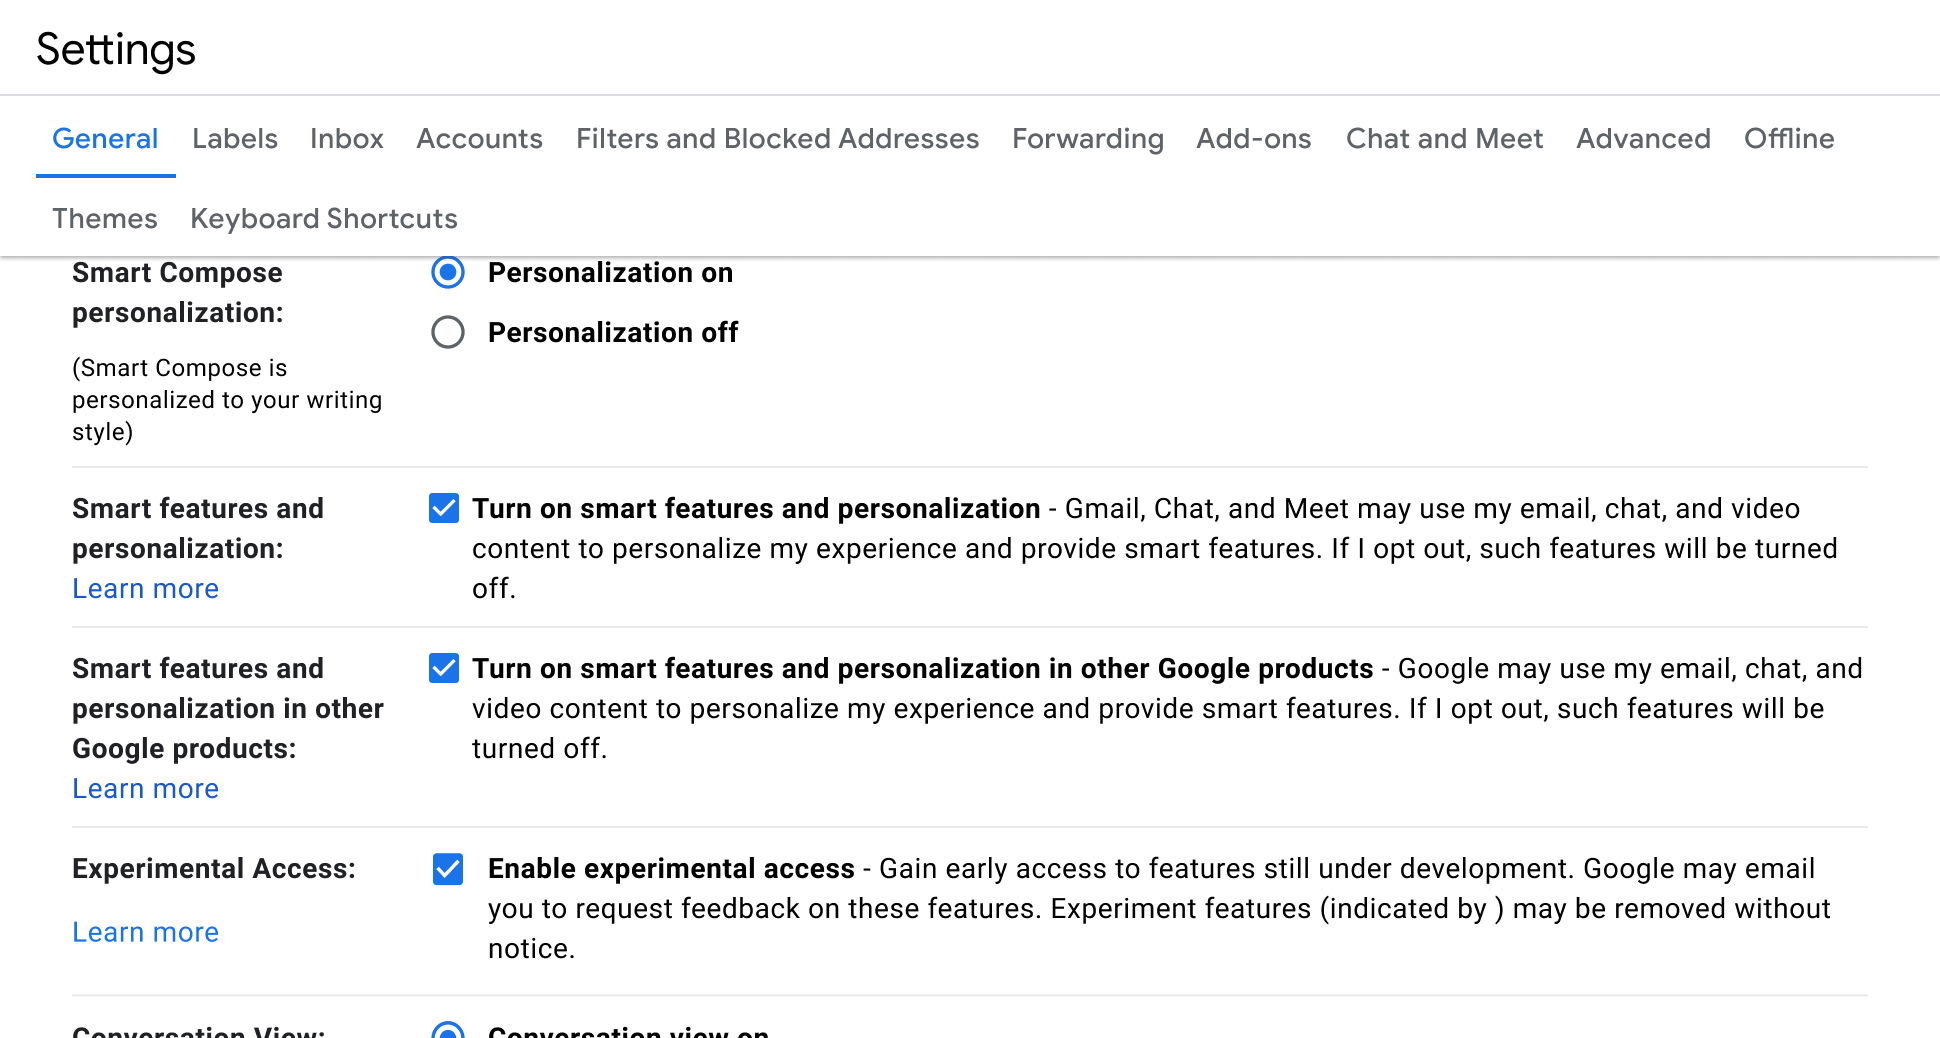 Smart features and personalization settings in Gmail settings